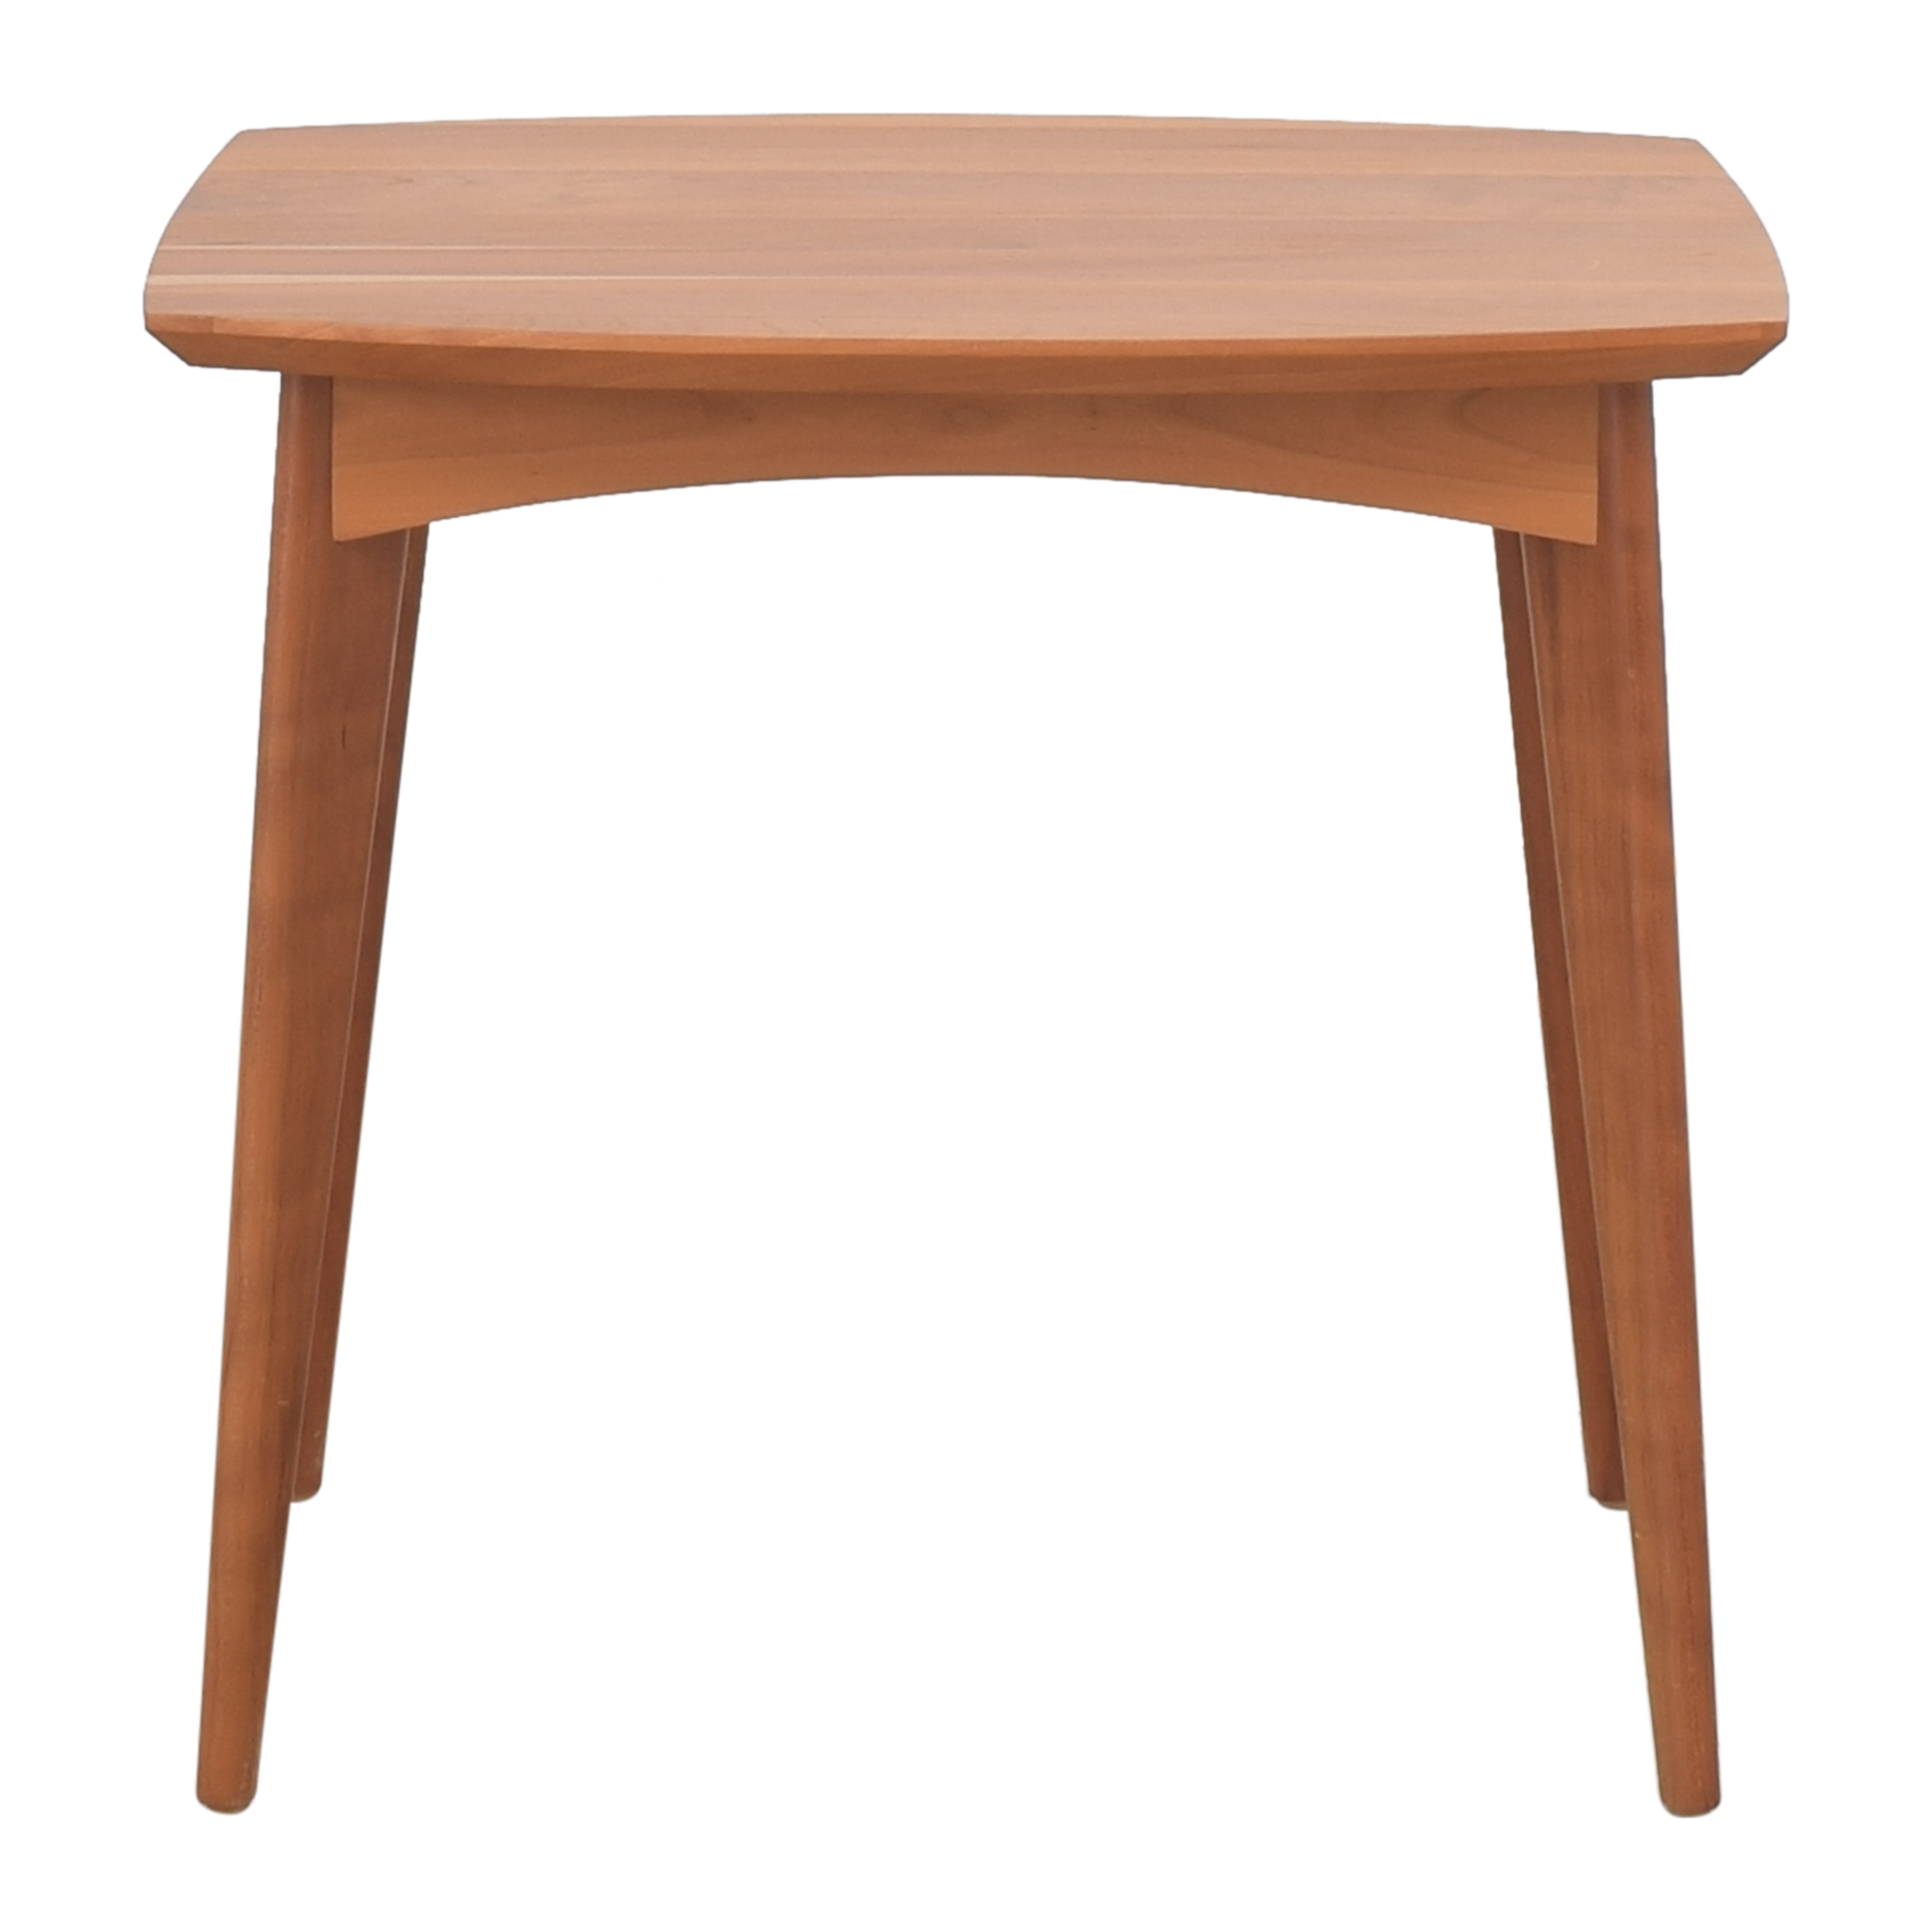 buy Room & Board Room & Board Ventura End Table online